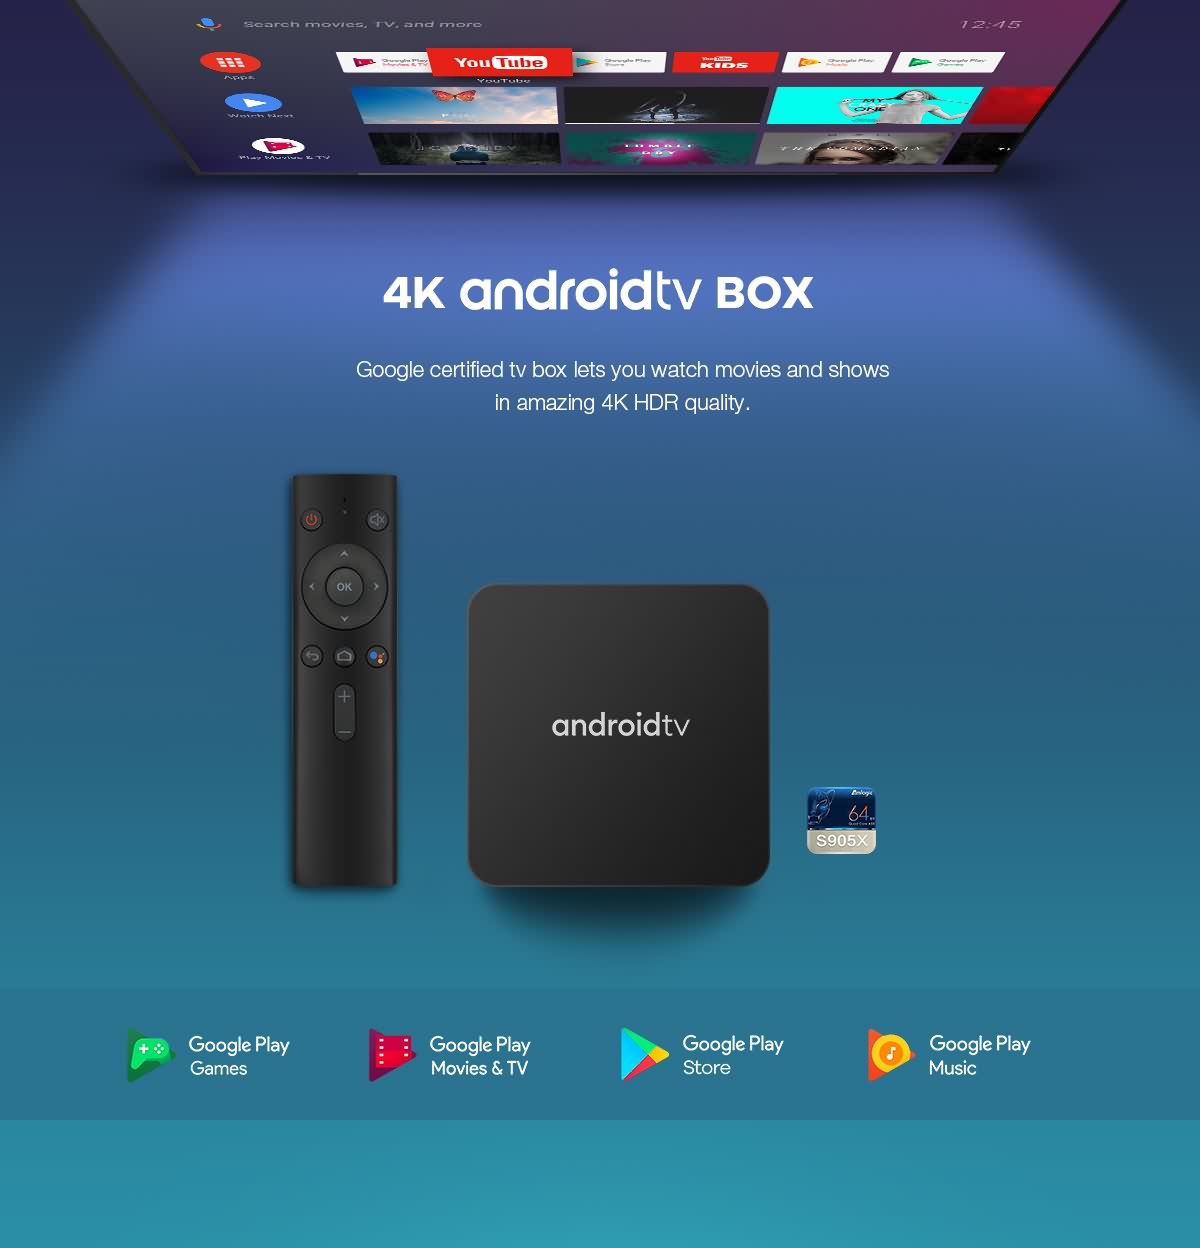 android box with TV tuner DVB-T2 configured by S905D chipset based on android 9.0/10.0 1